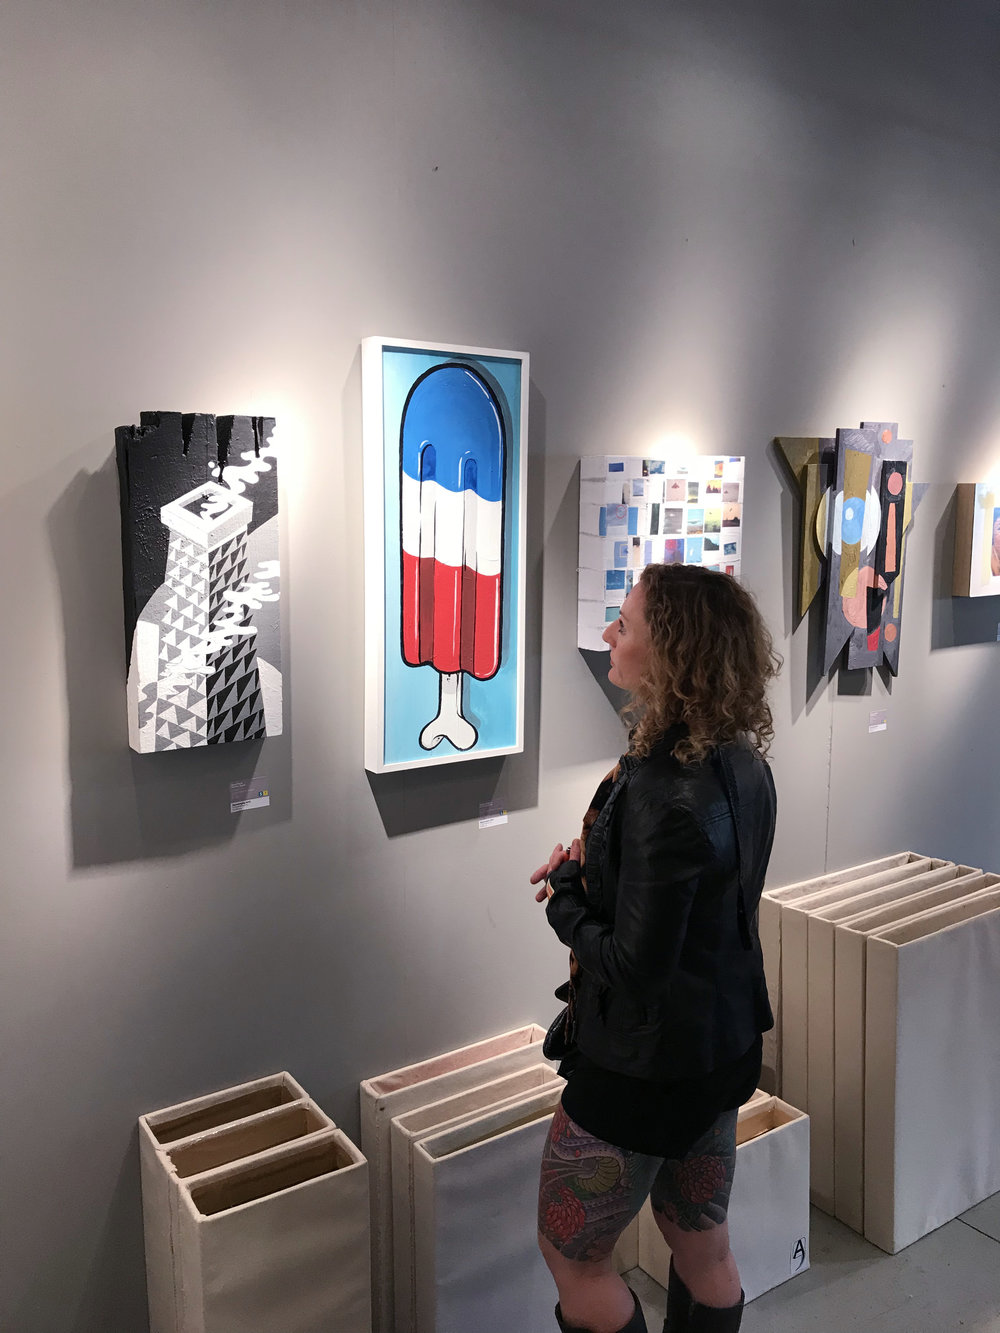 Contemporary art goes beyond exhibitions and galleries